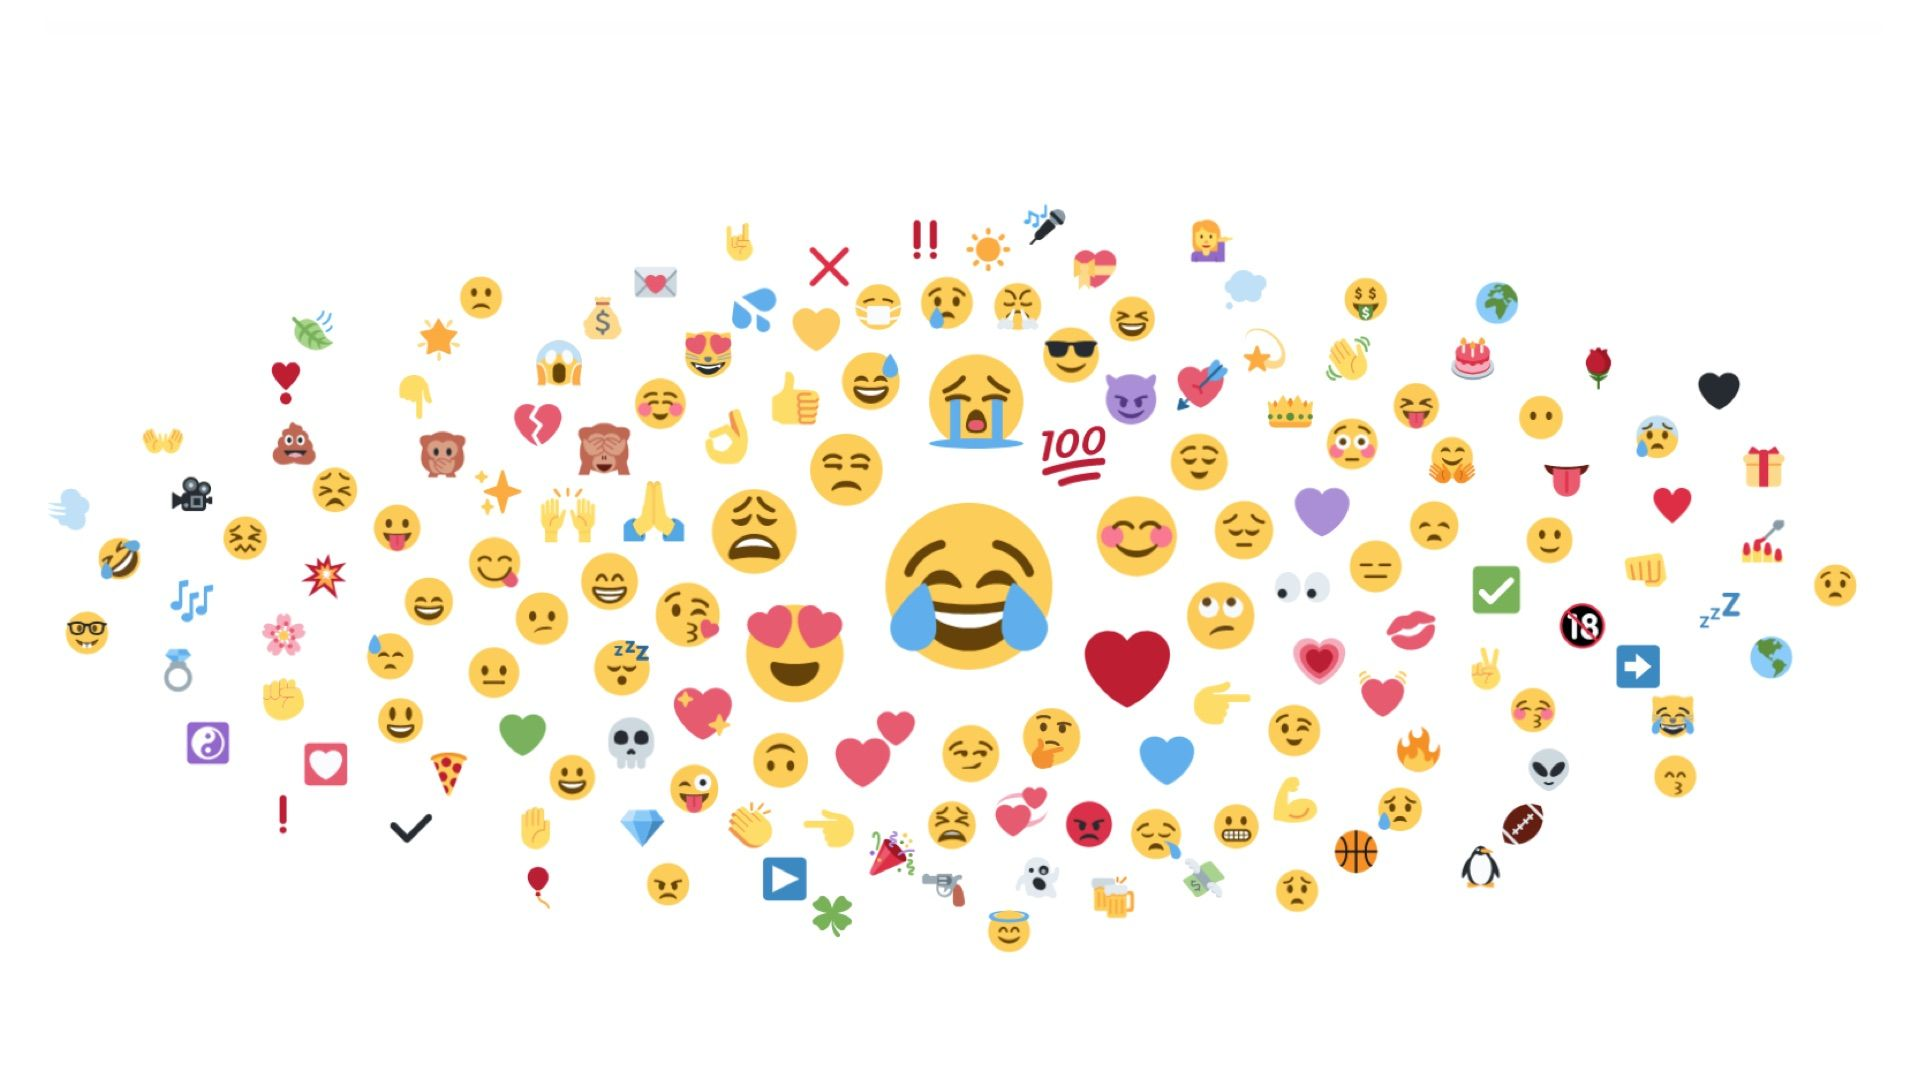 Emoji Sentiment Analysis 2015-2017